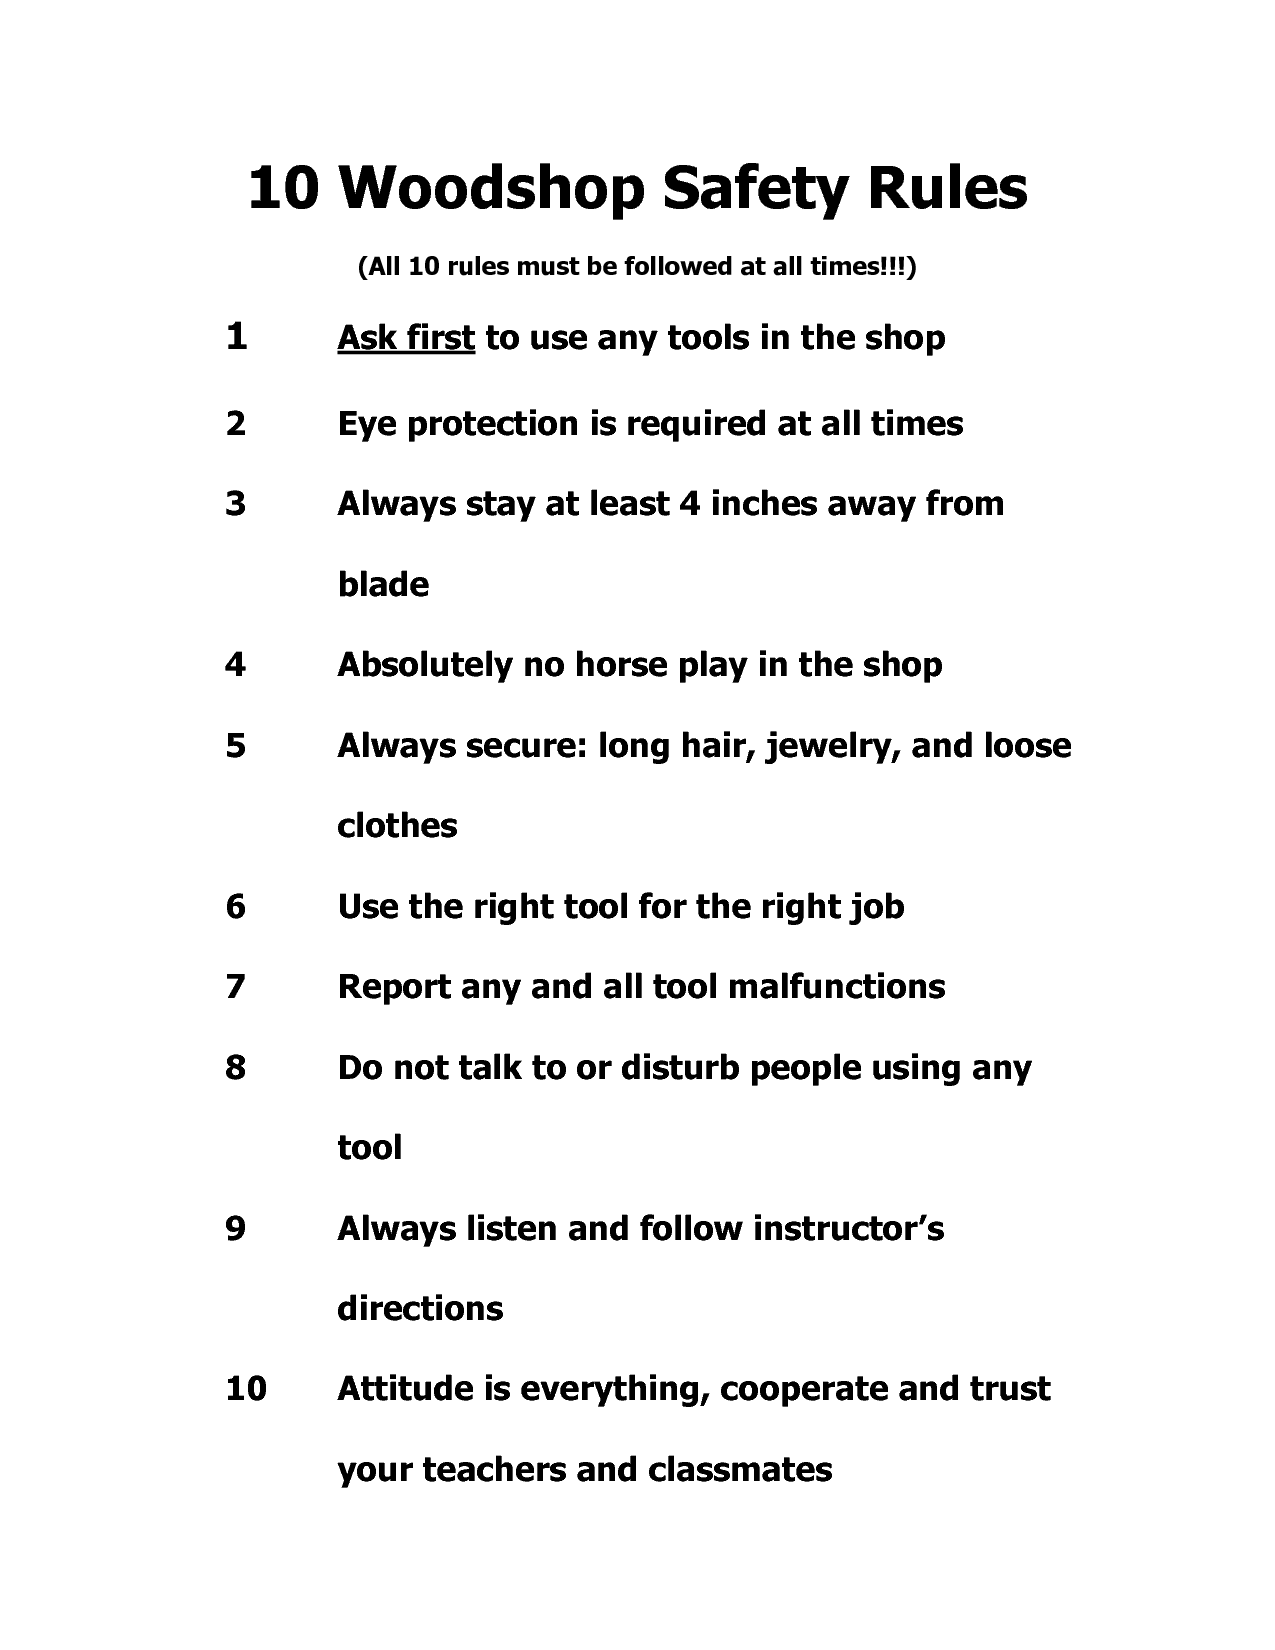 Woodshop Safety Rules When Someone Plan To Learn